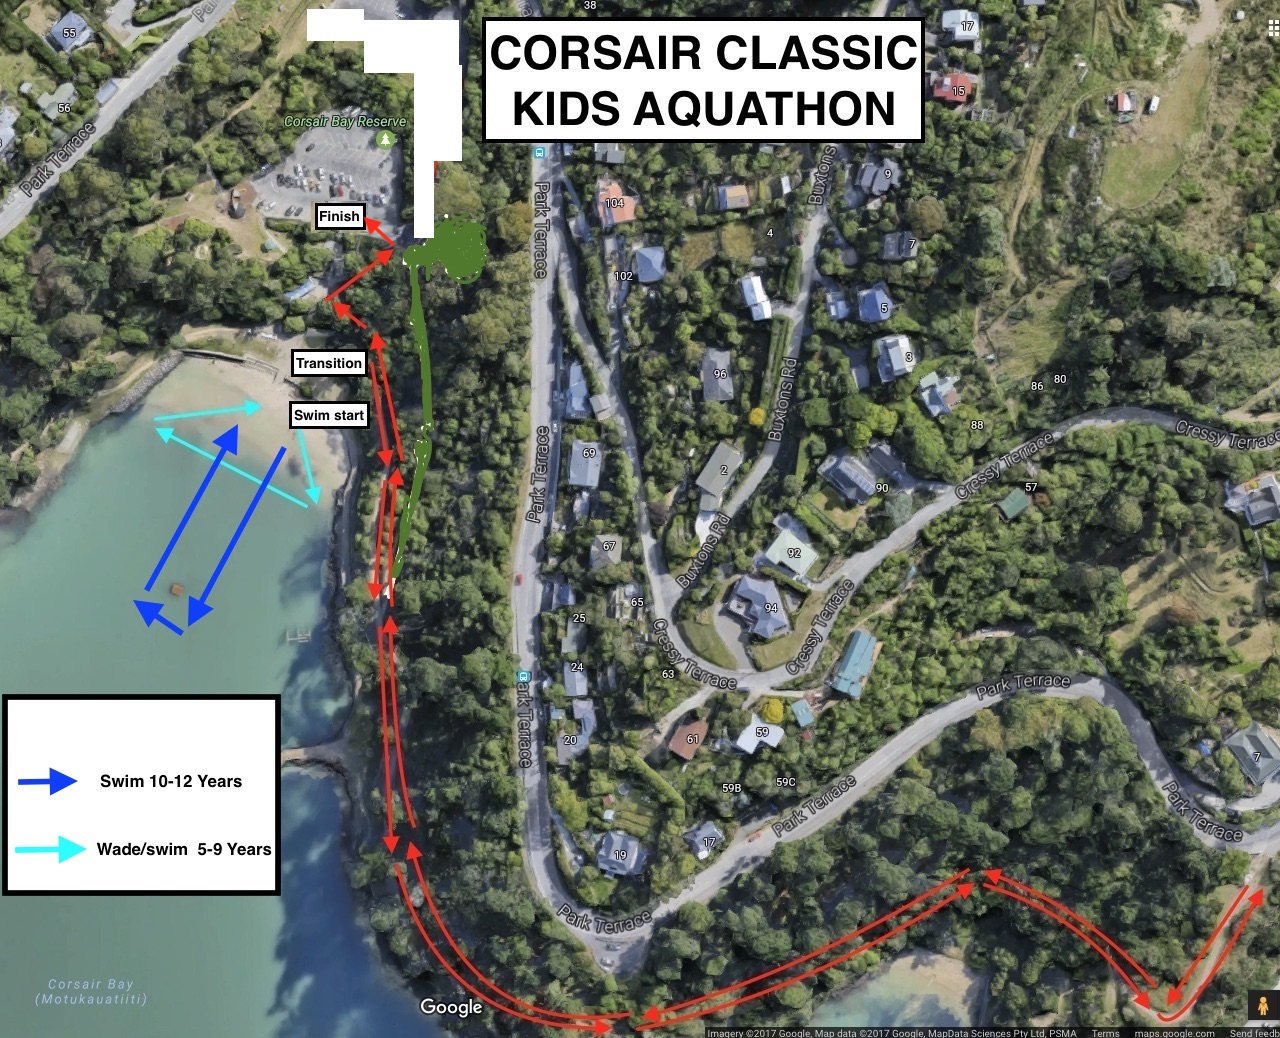 kids aquathon corsair 2018.jpg